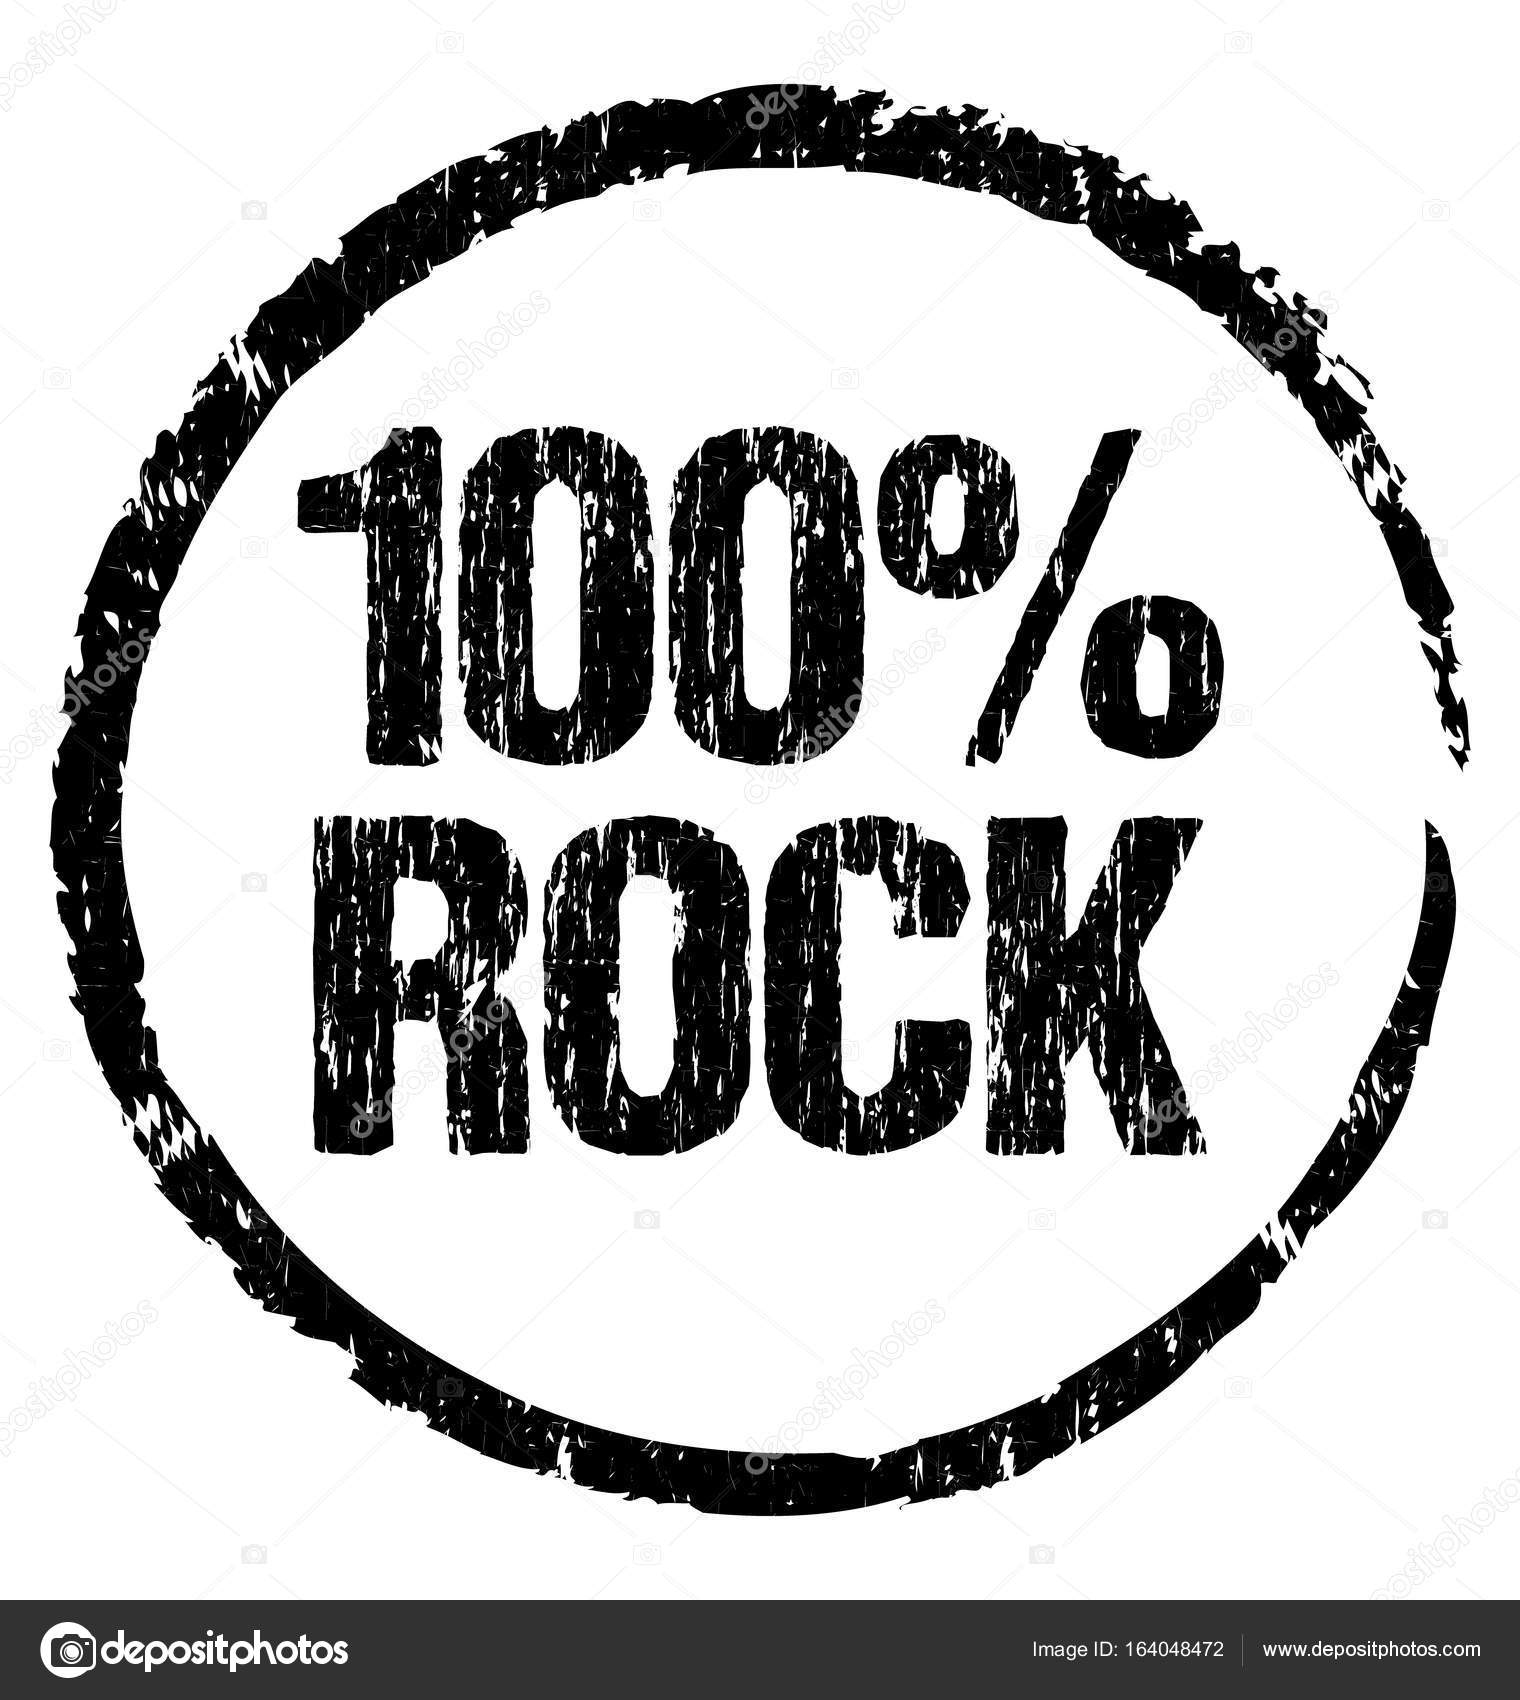 100 rock grunge symbol ready to stamp on any marketing object 100 rock grunge symbol ready to stamp on any marketing object stock buycottarizona Image collections